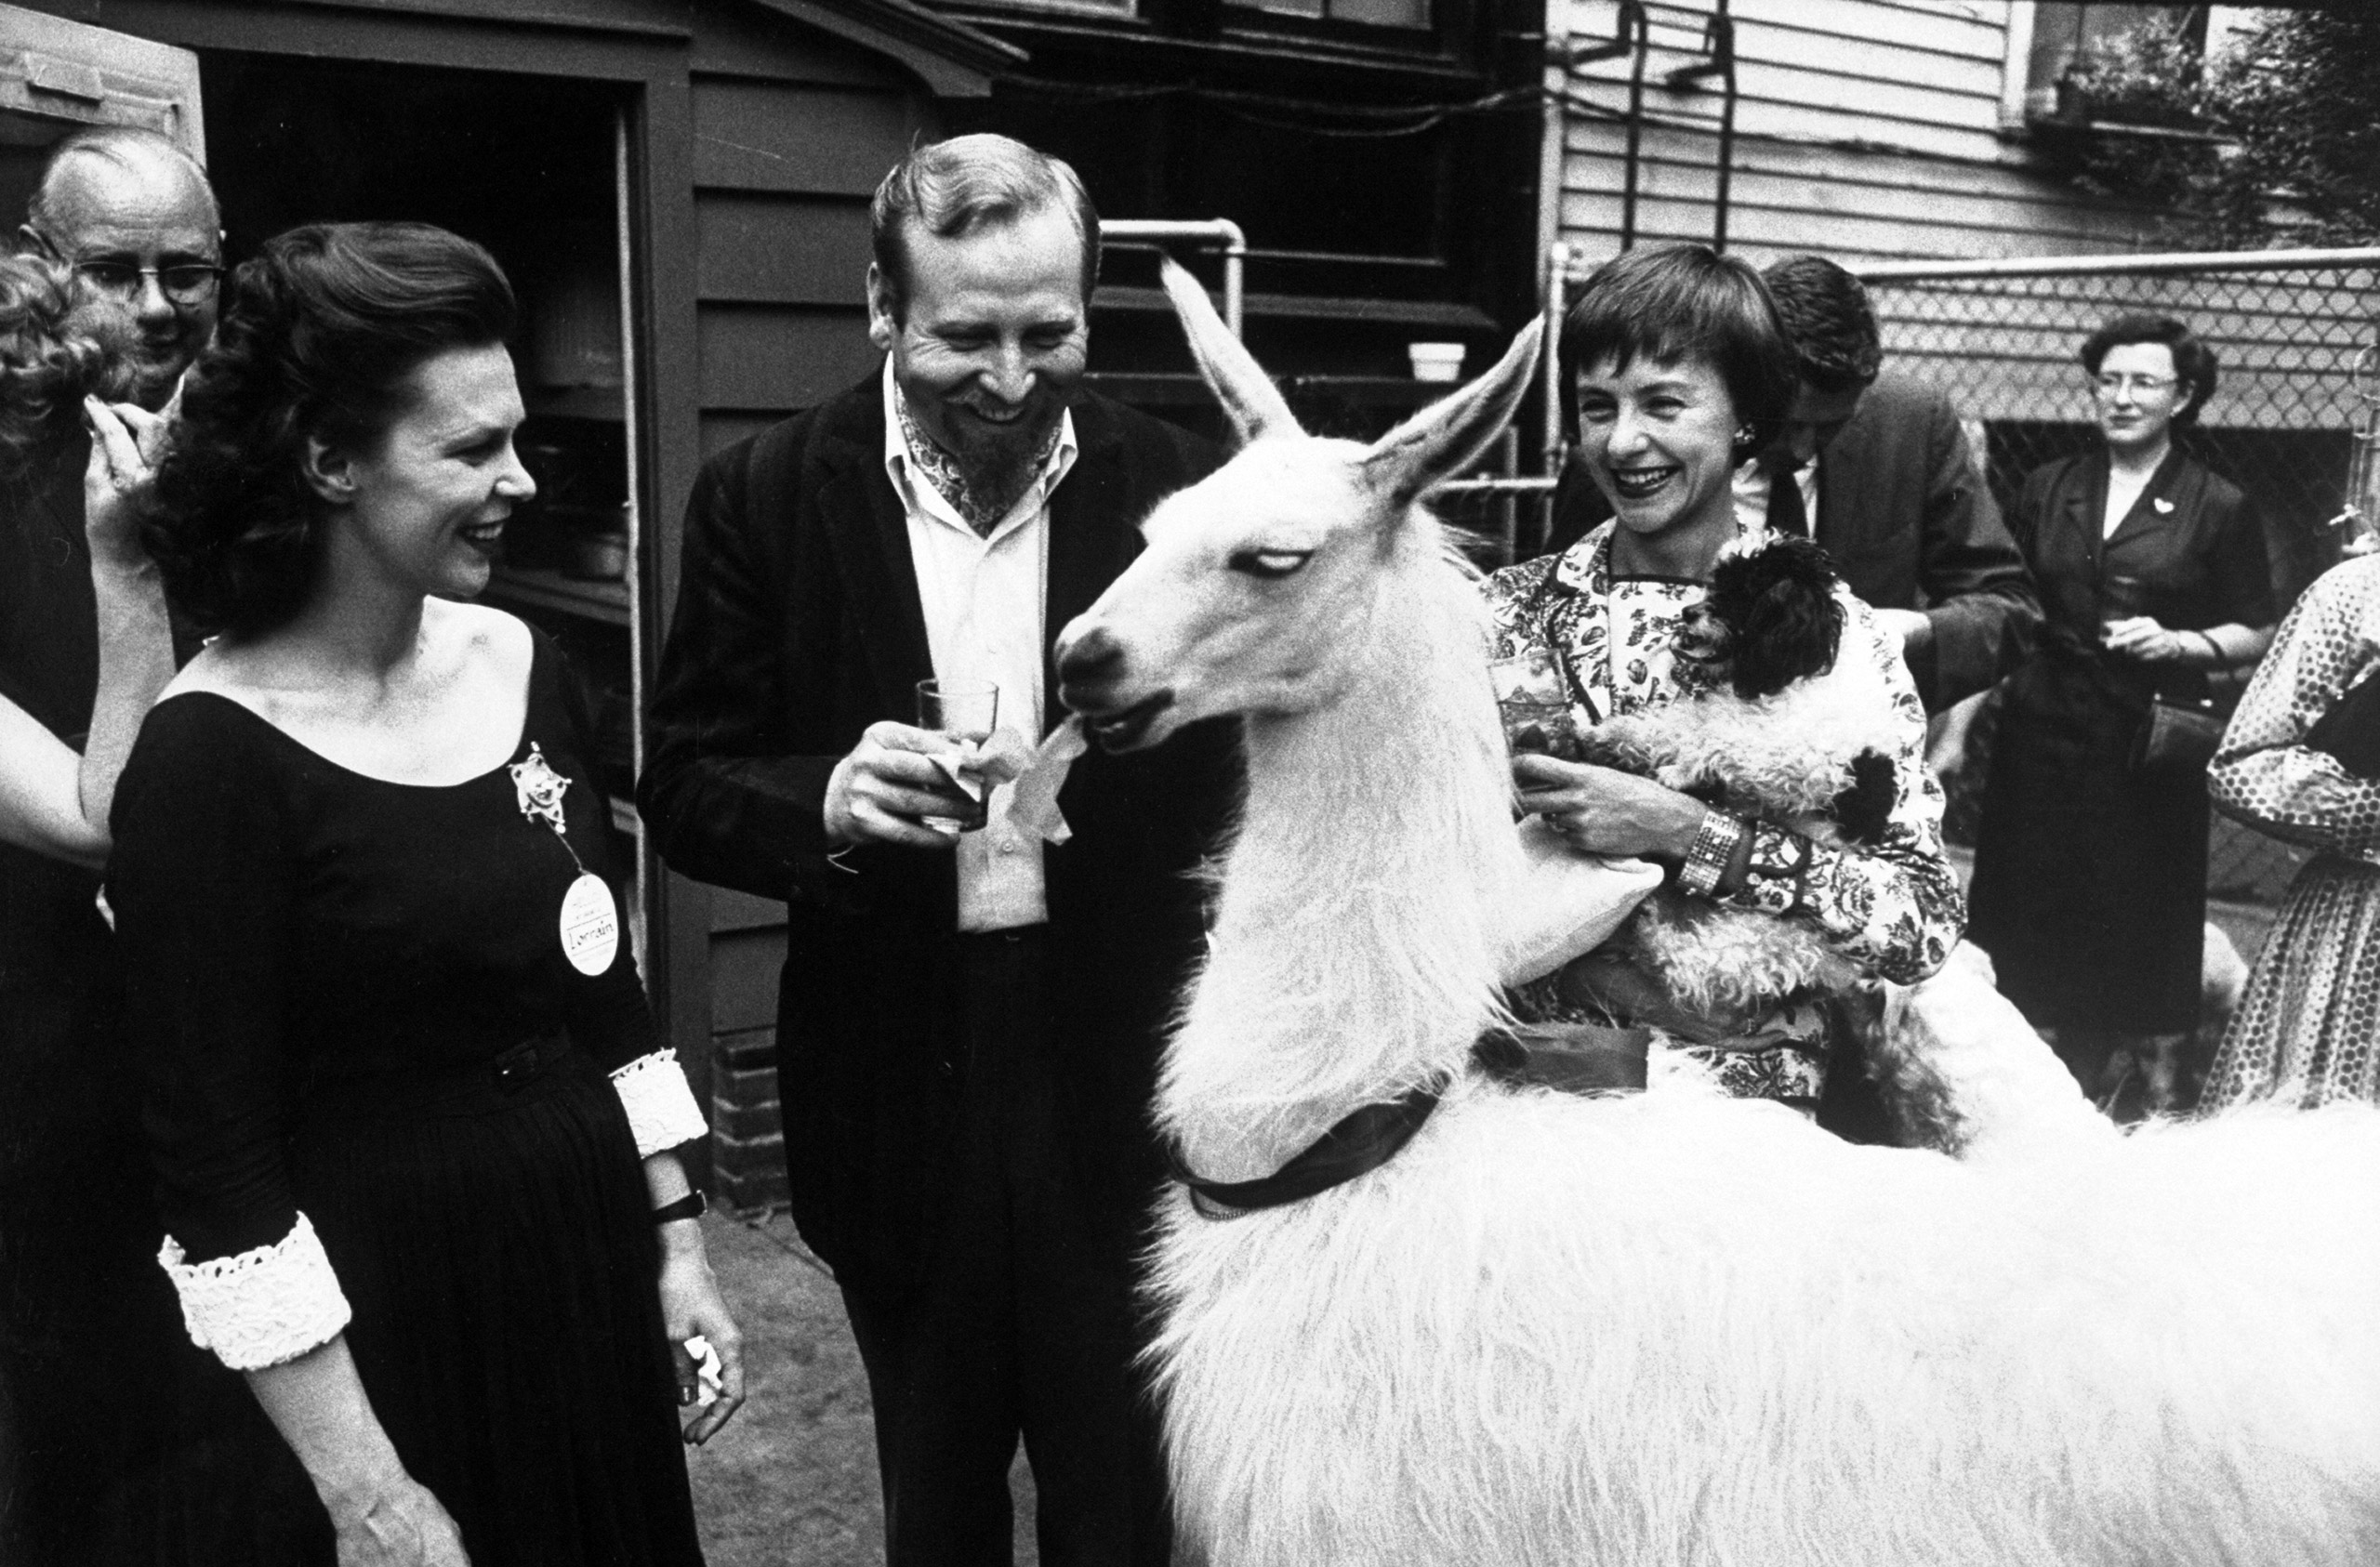 Kangaroo and Llama Party 1959